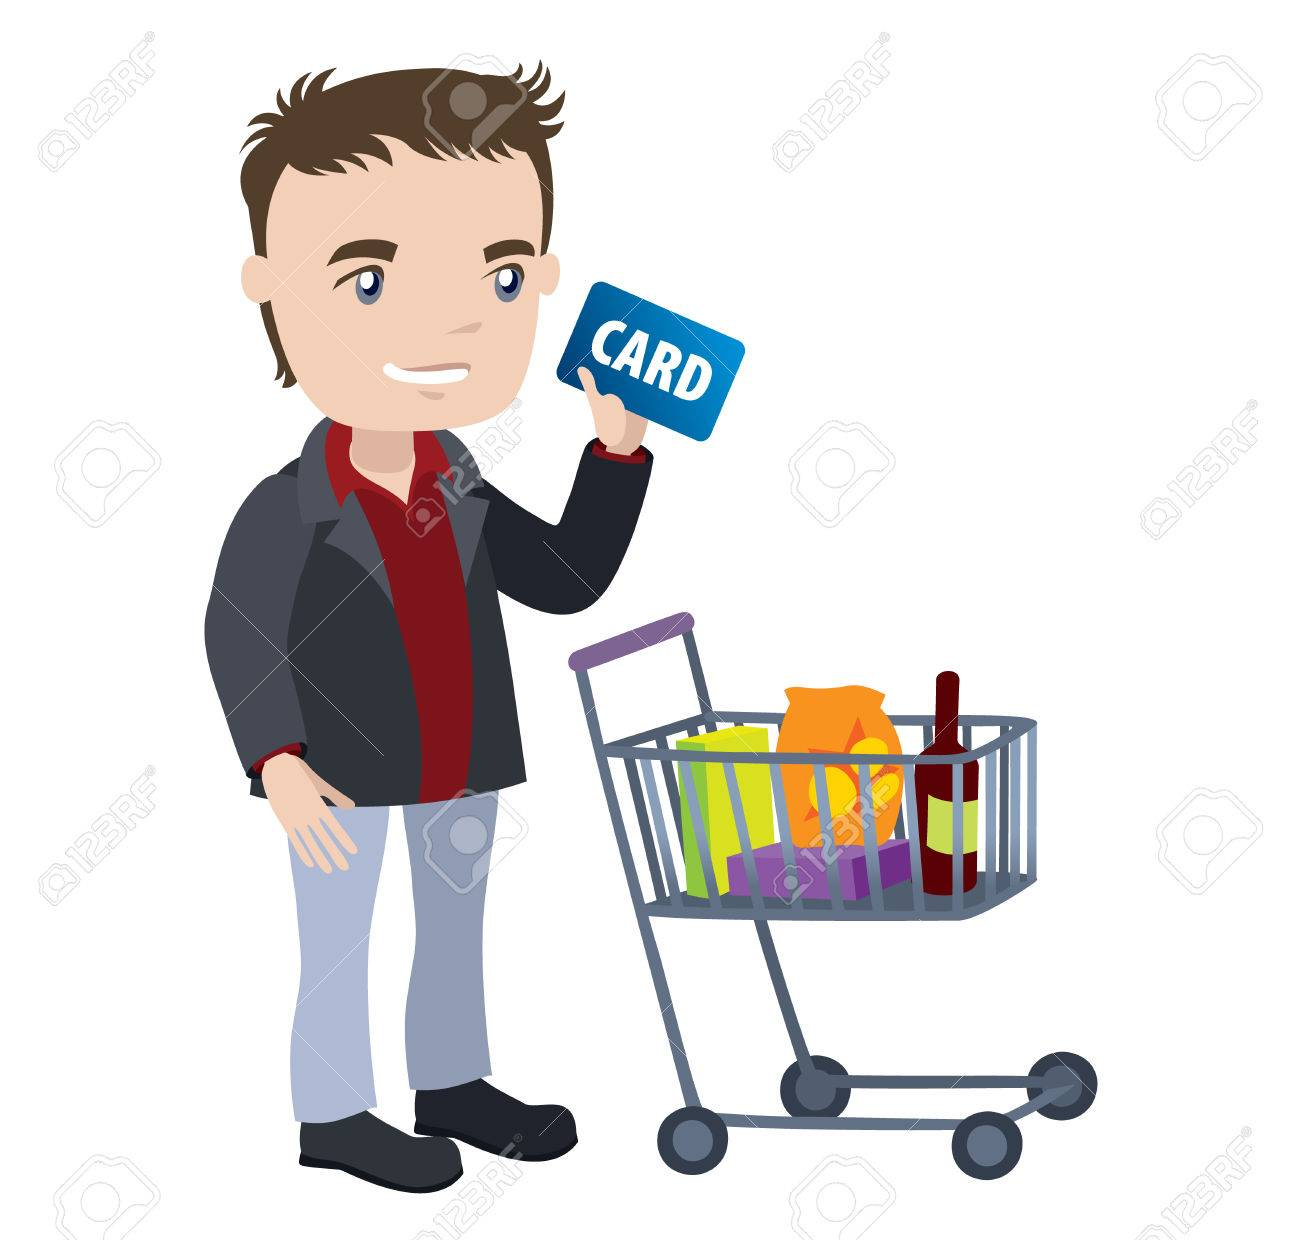 man with a shopping cart and credit card businessman cartoon